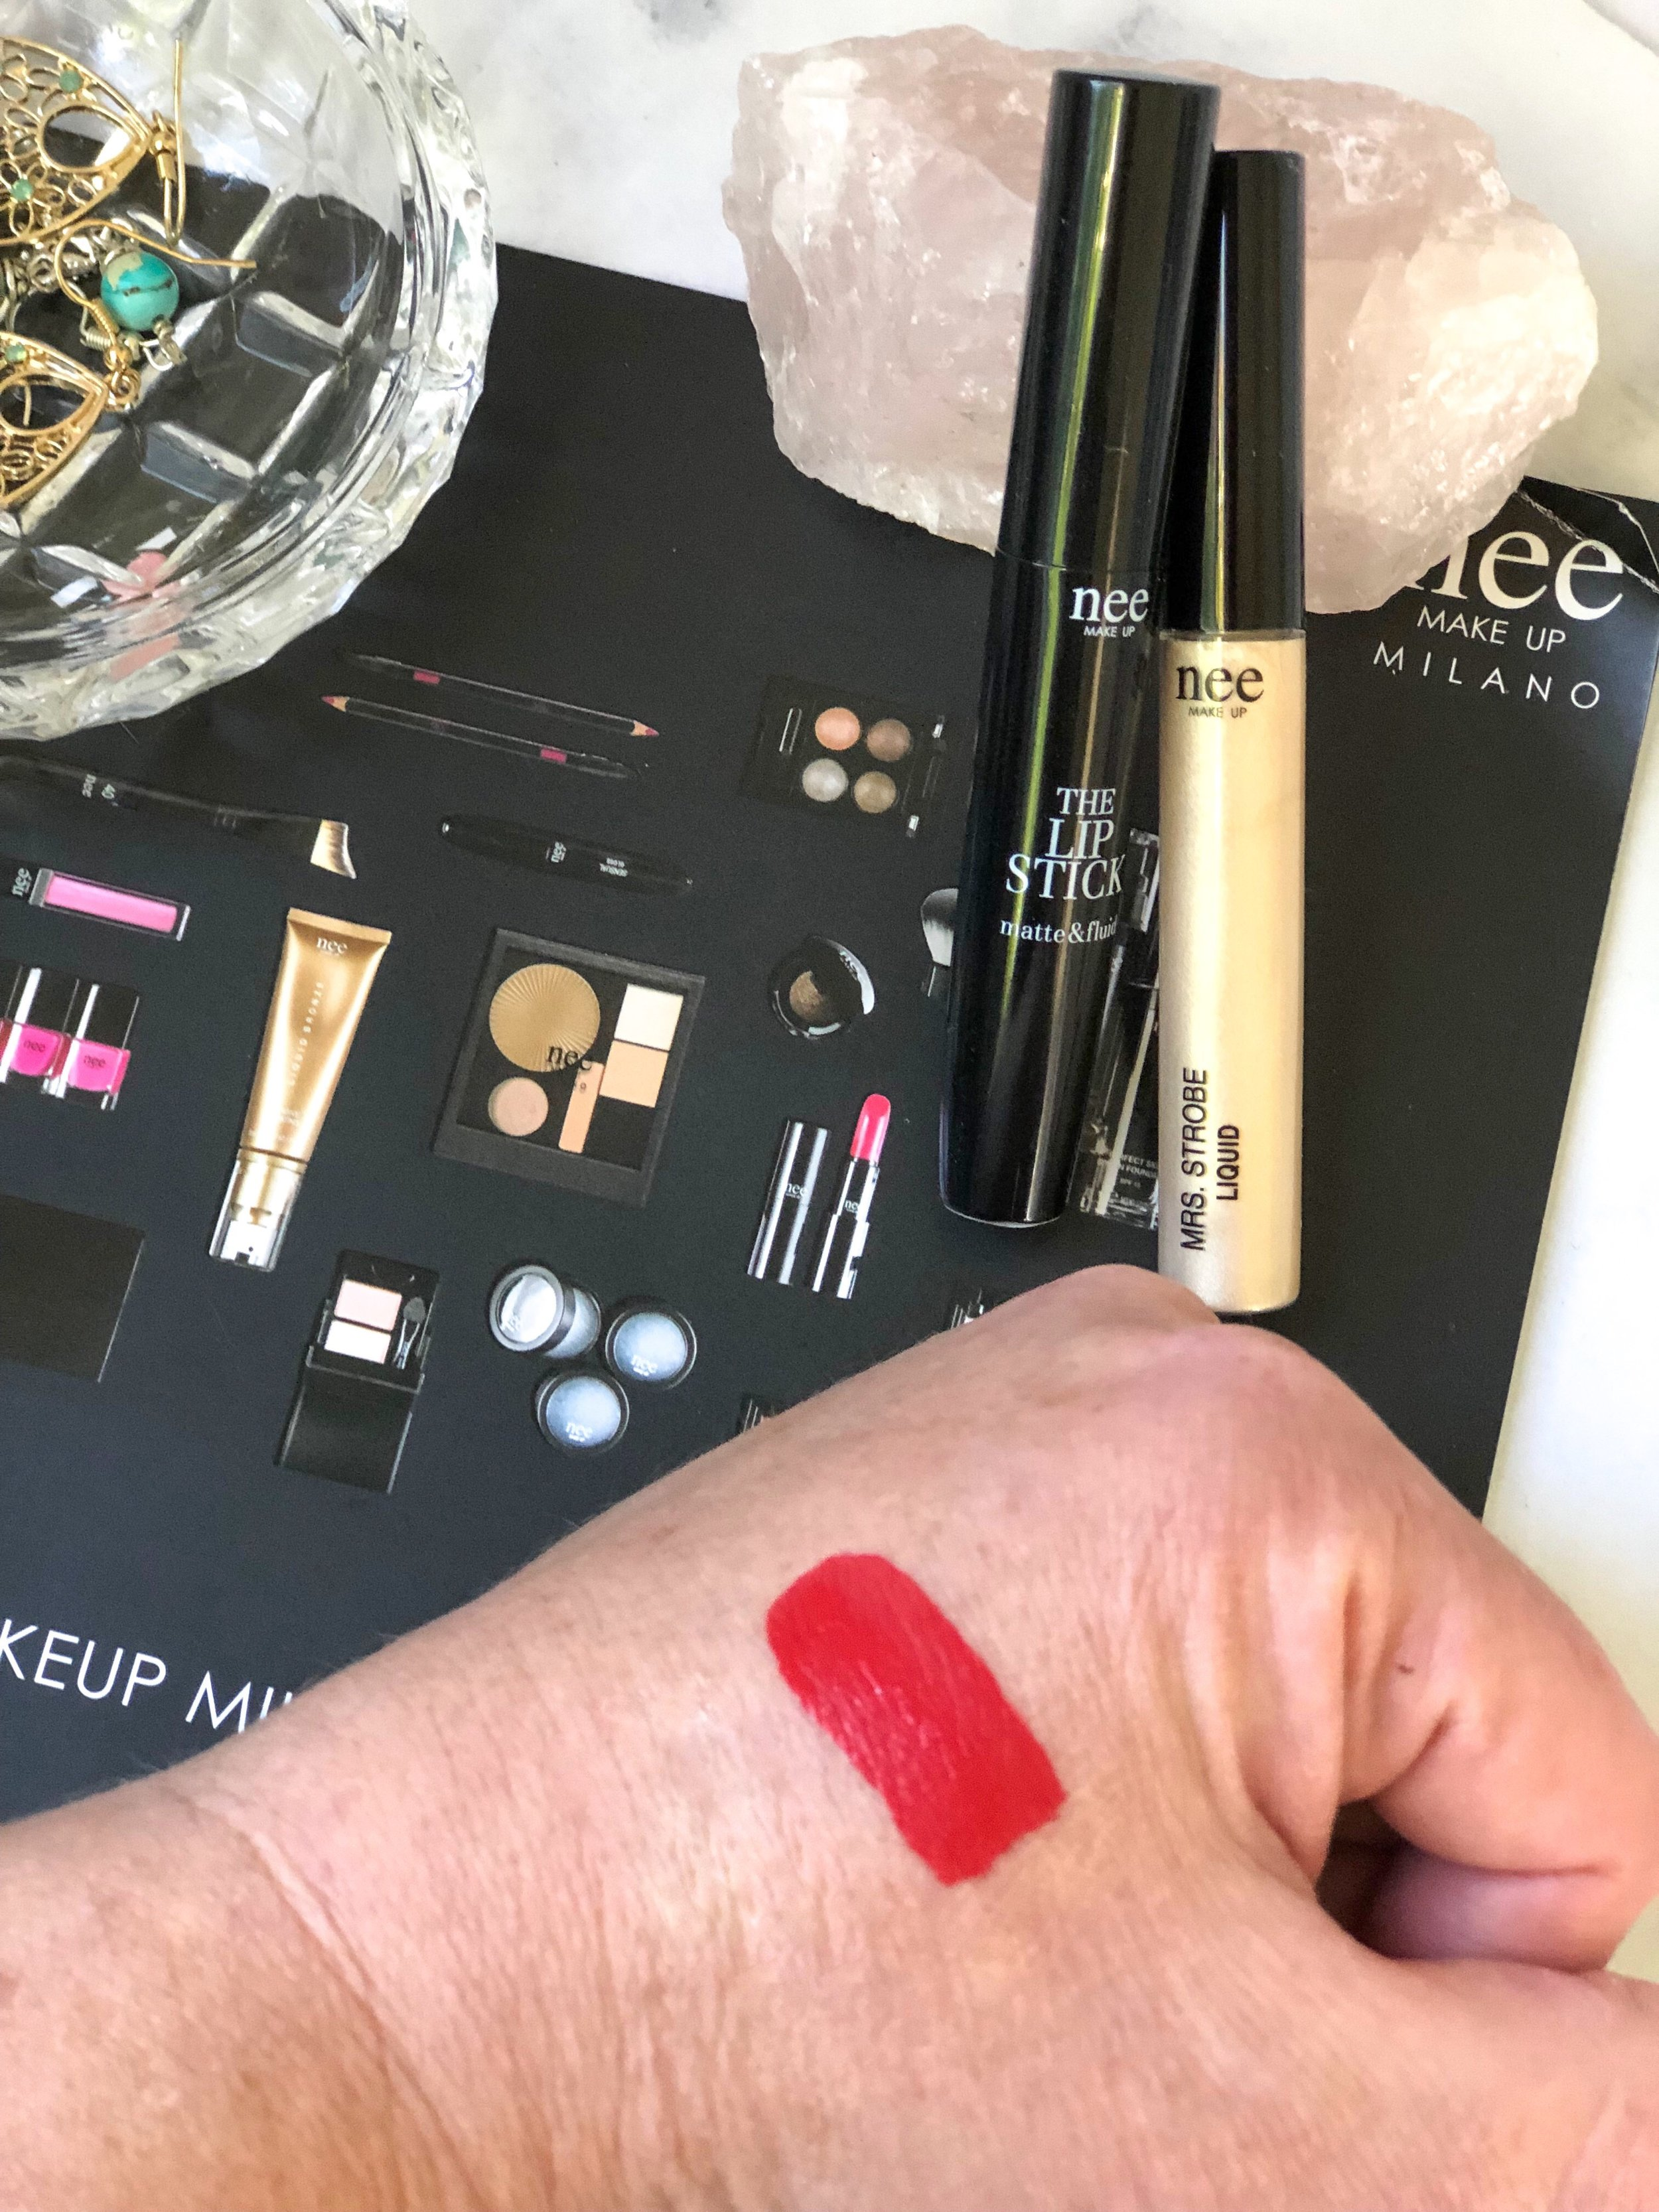 Nee makeup The Lipstick matte and Fluid Red carpet Swatch.jpg